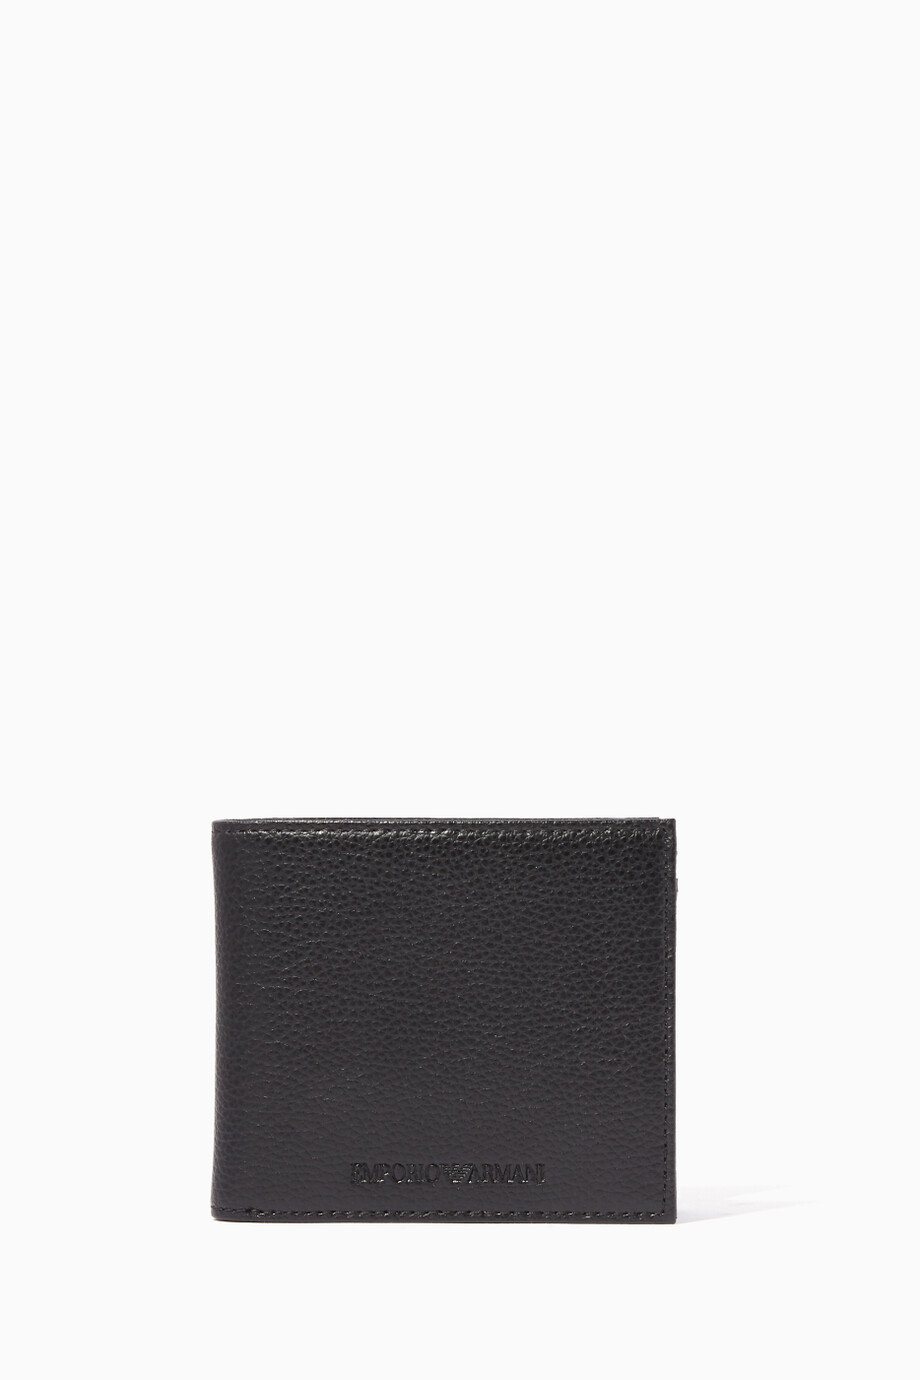 6365f7c4ba Shop Emporio Armani Black Embossed Logo Grained Leather Wallet for ...